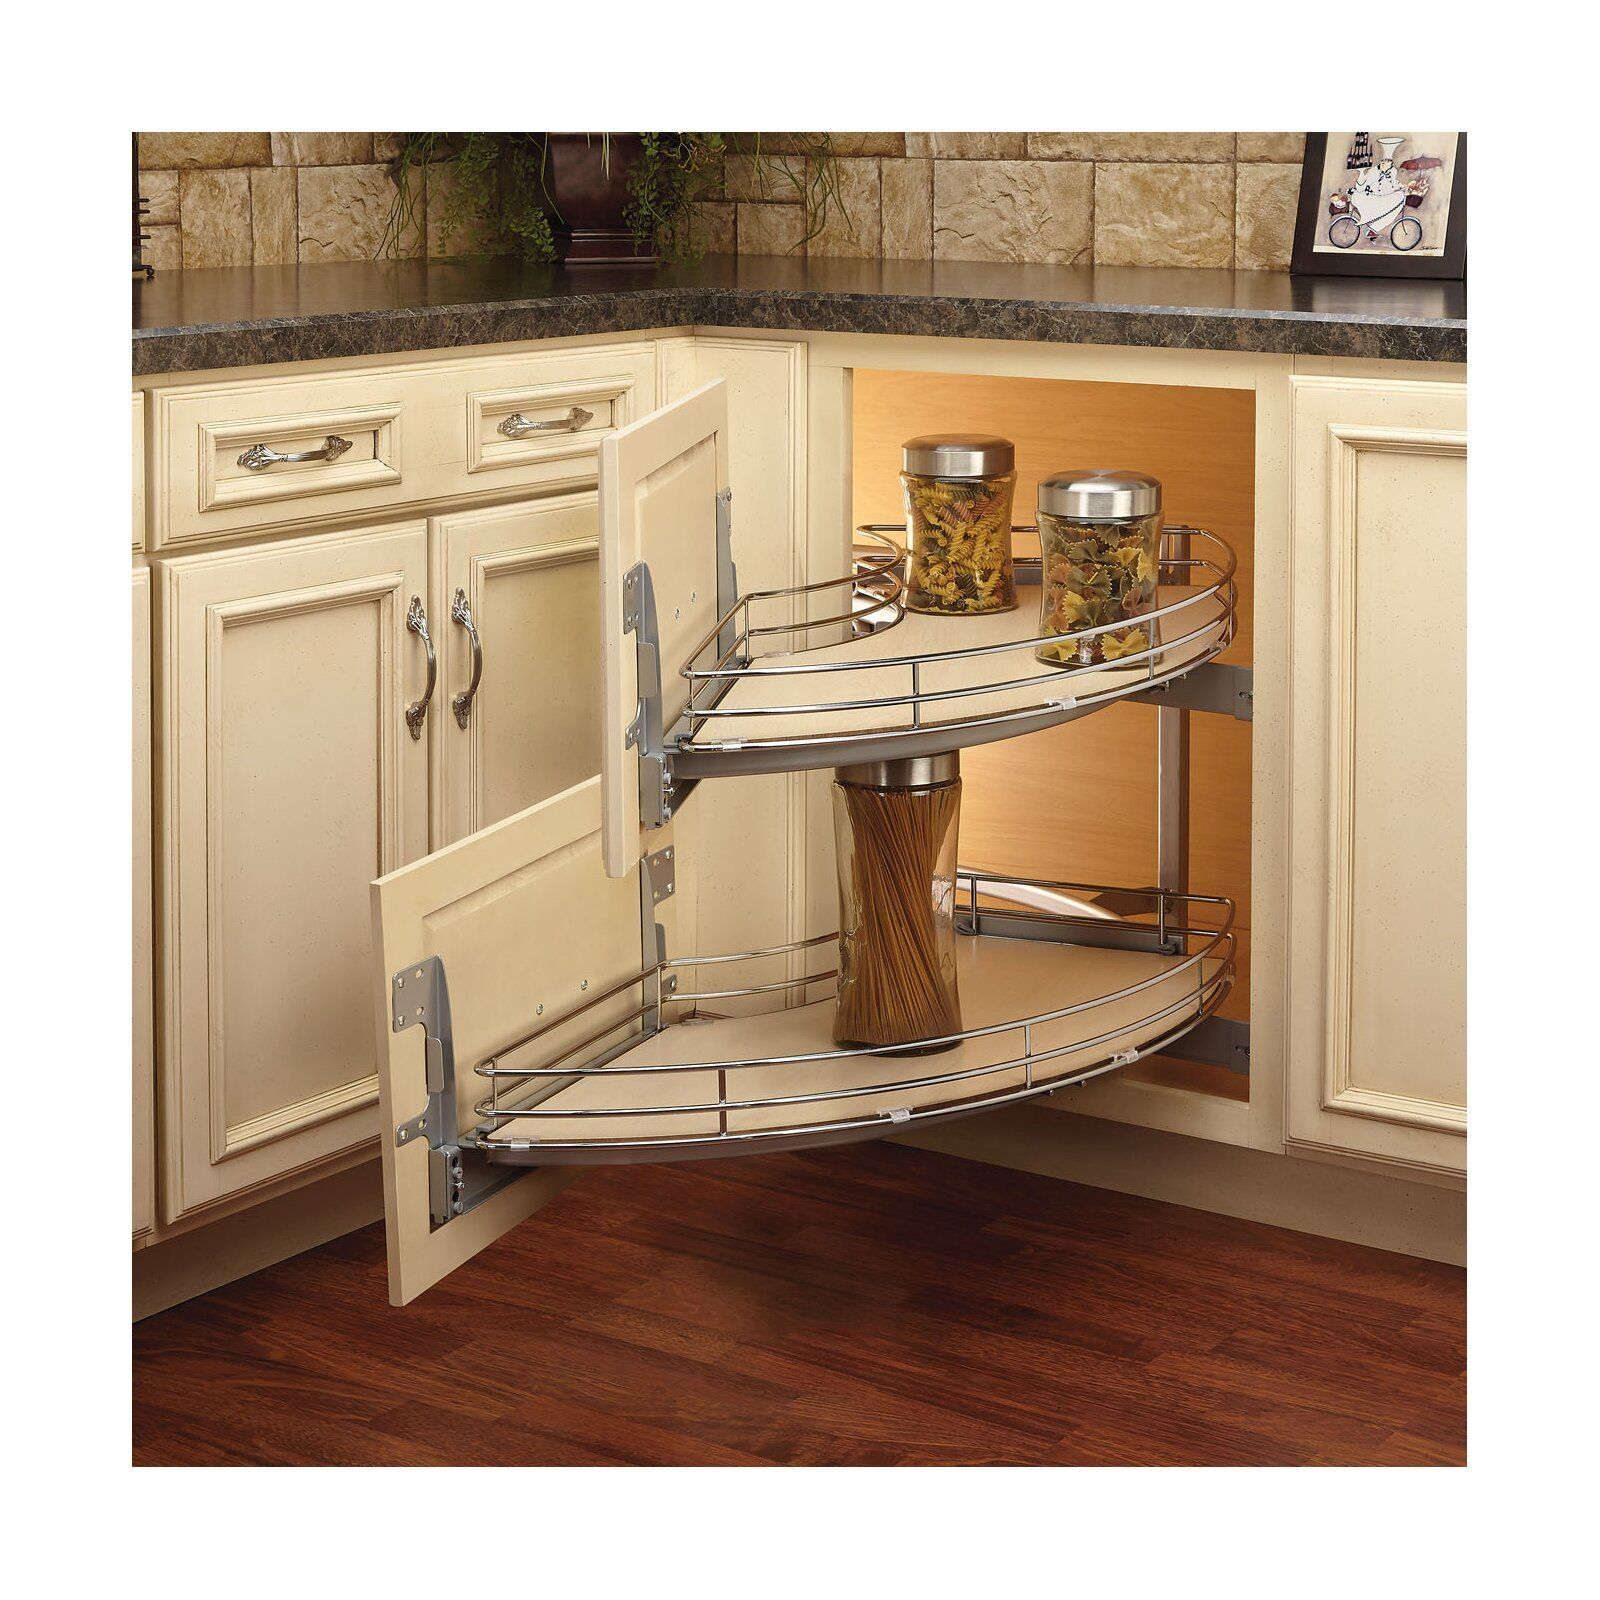 Rev A Shelf Curve Two Tier Right Handed Blind Corner Organizer Wayfair Kitchen Remodel Cost Kitchen Remodel New Kitchen Cabinets